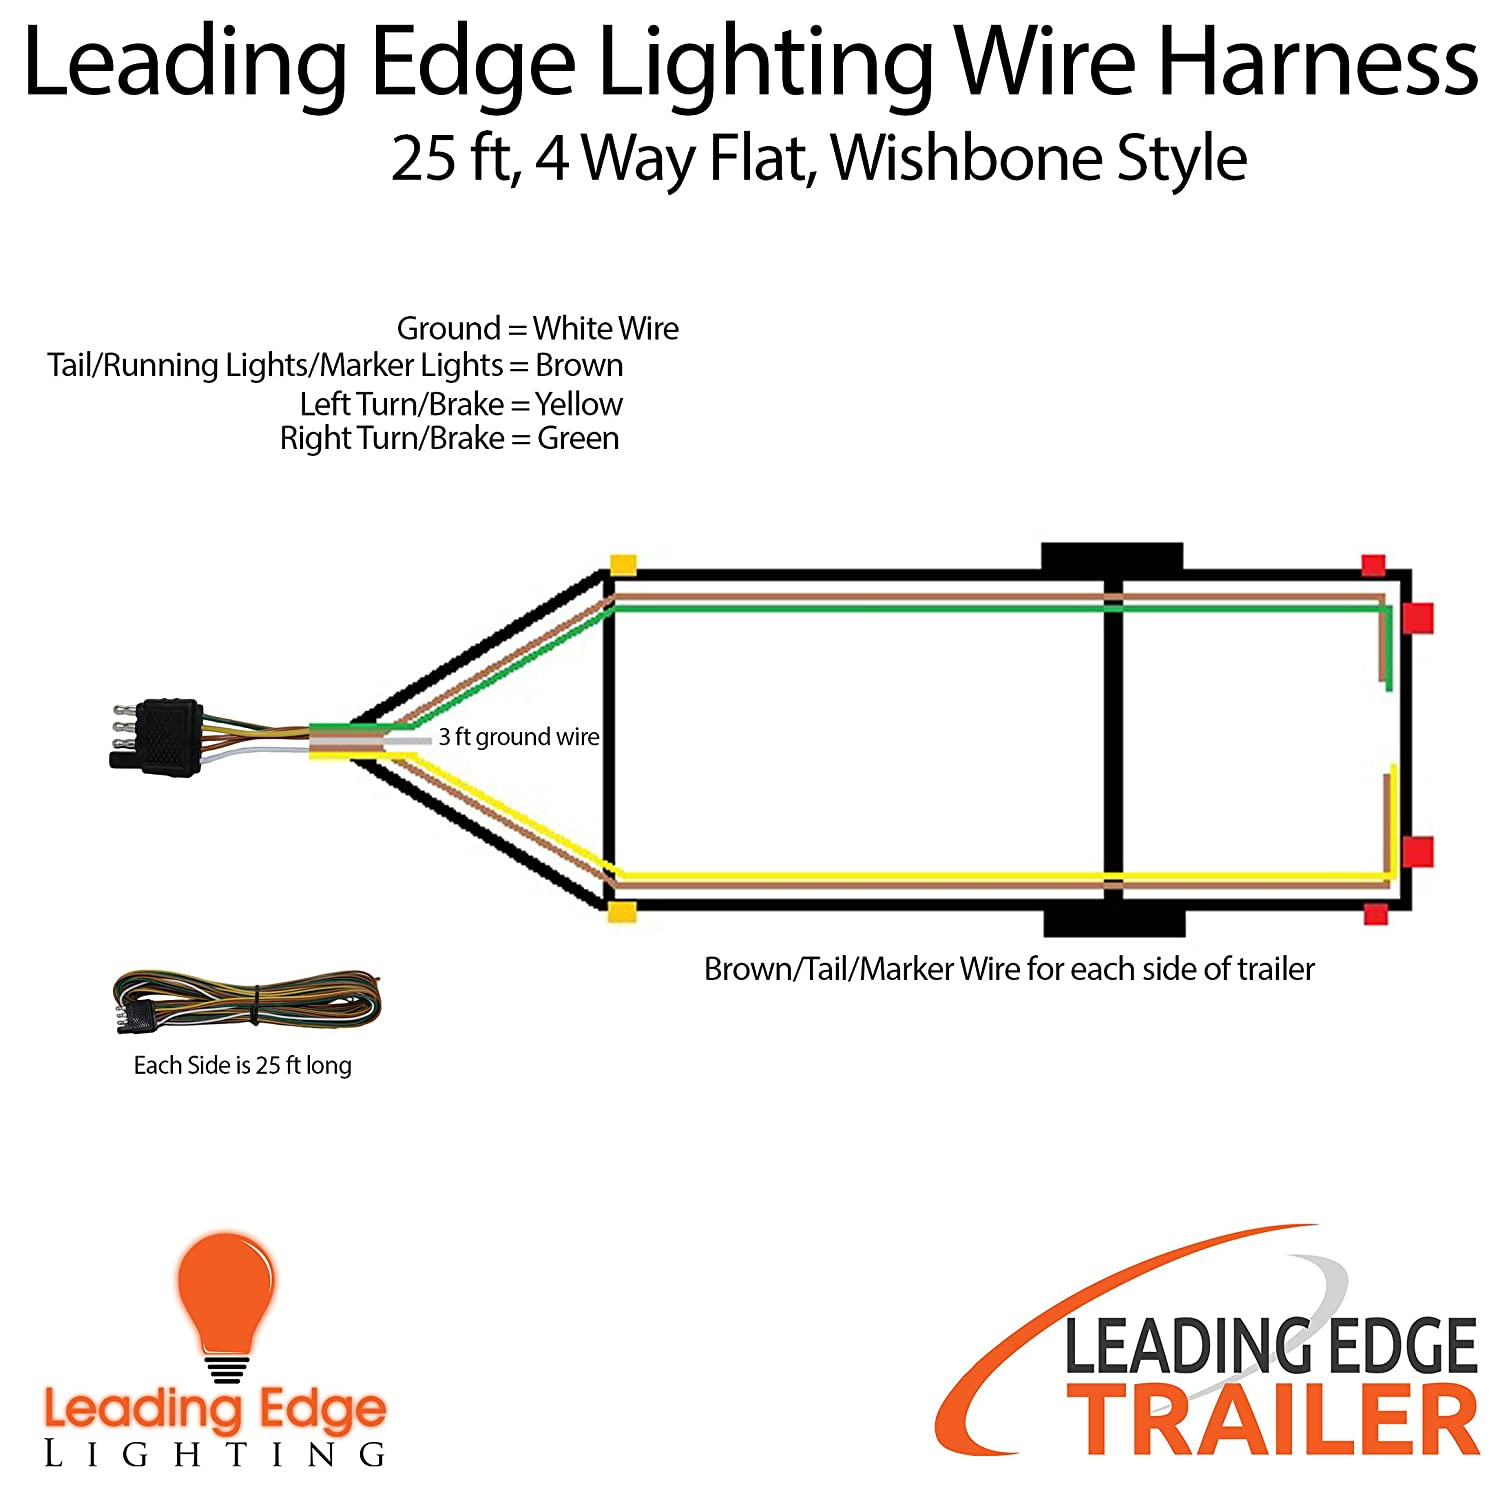 amazon com wishbone style trailer wiring harness with 4 flat rh amazon com wiring harness for trailer troubleshooting wiring harness trailer hitch